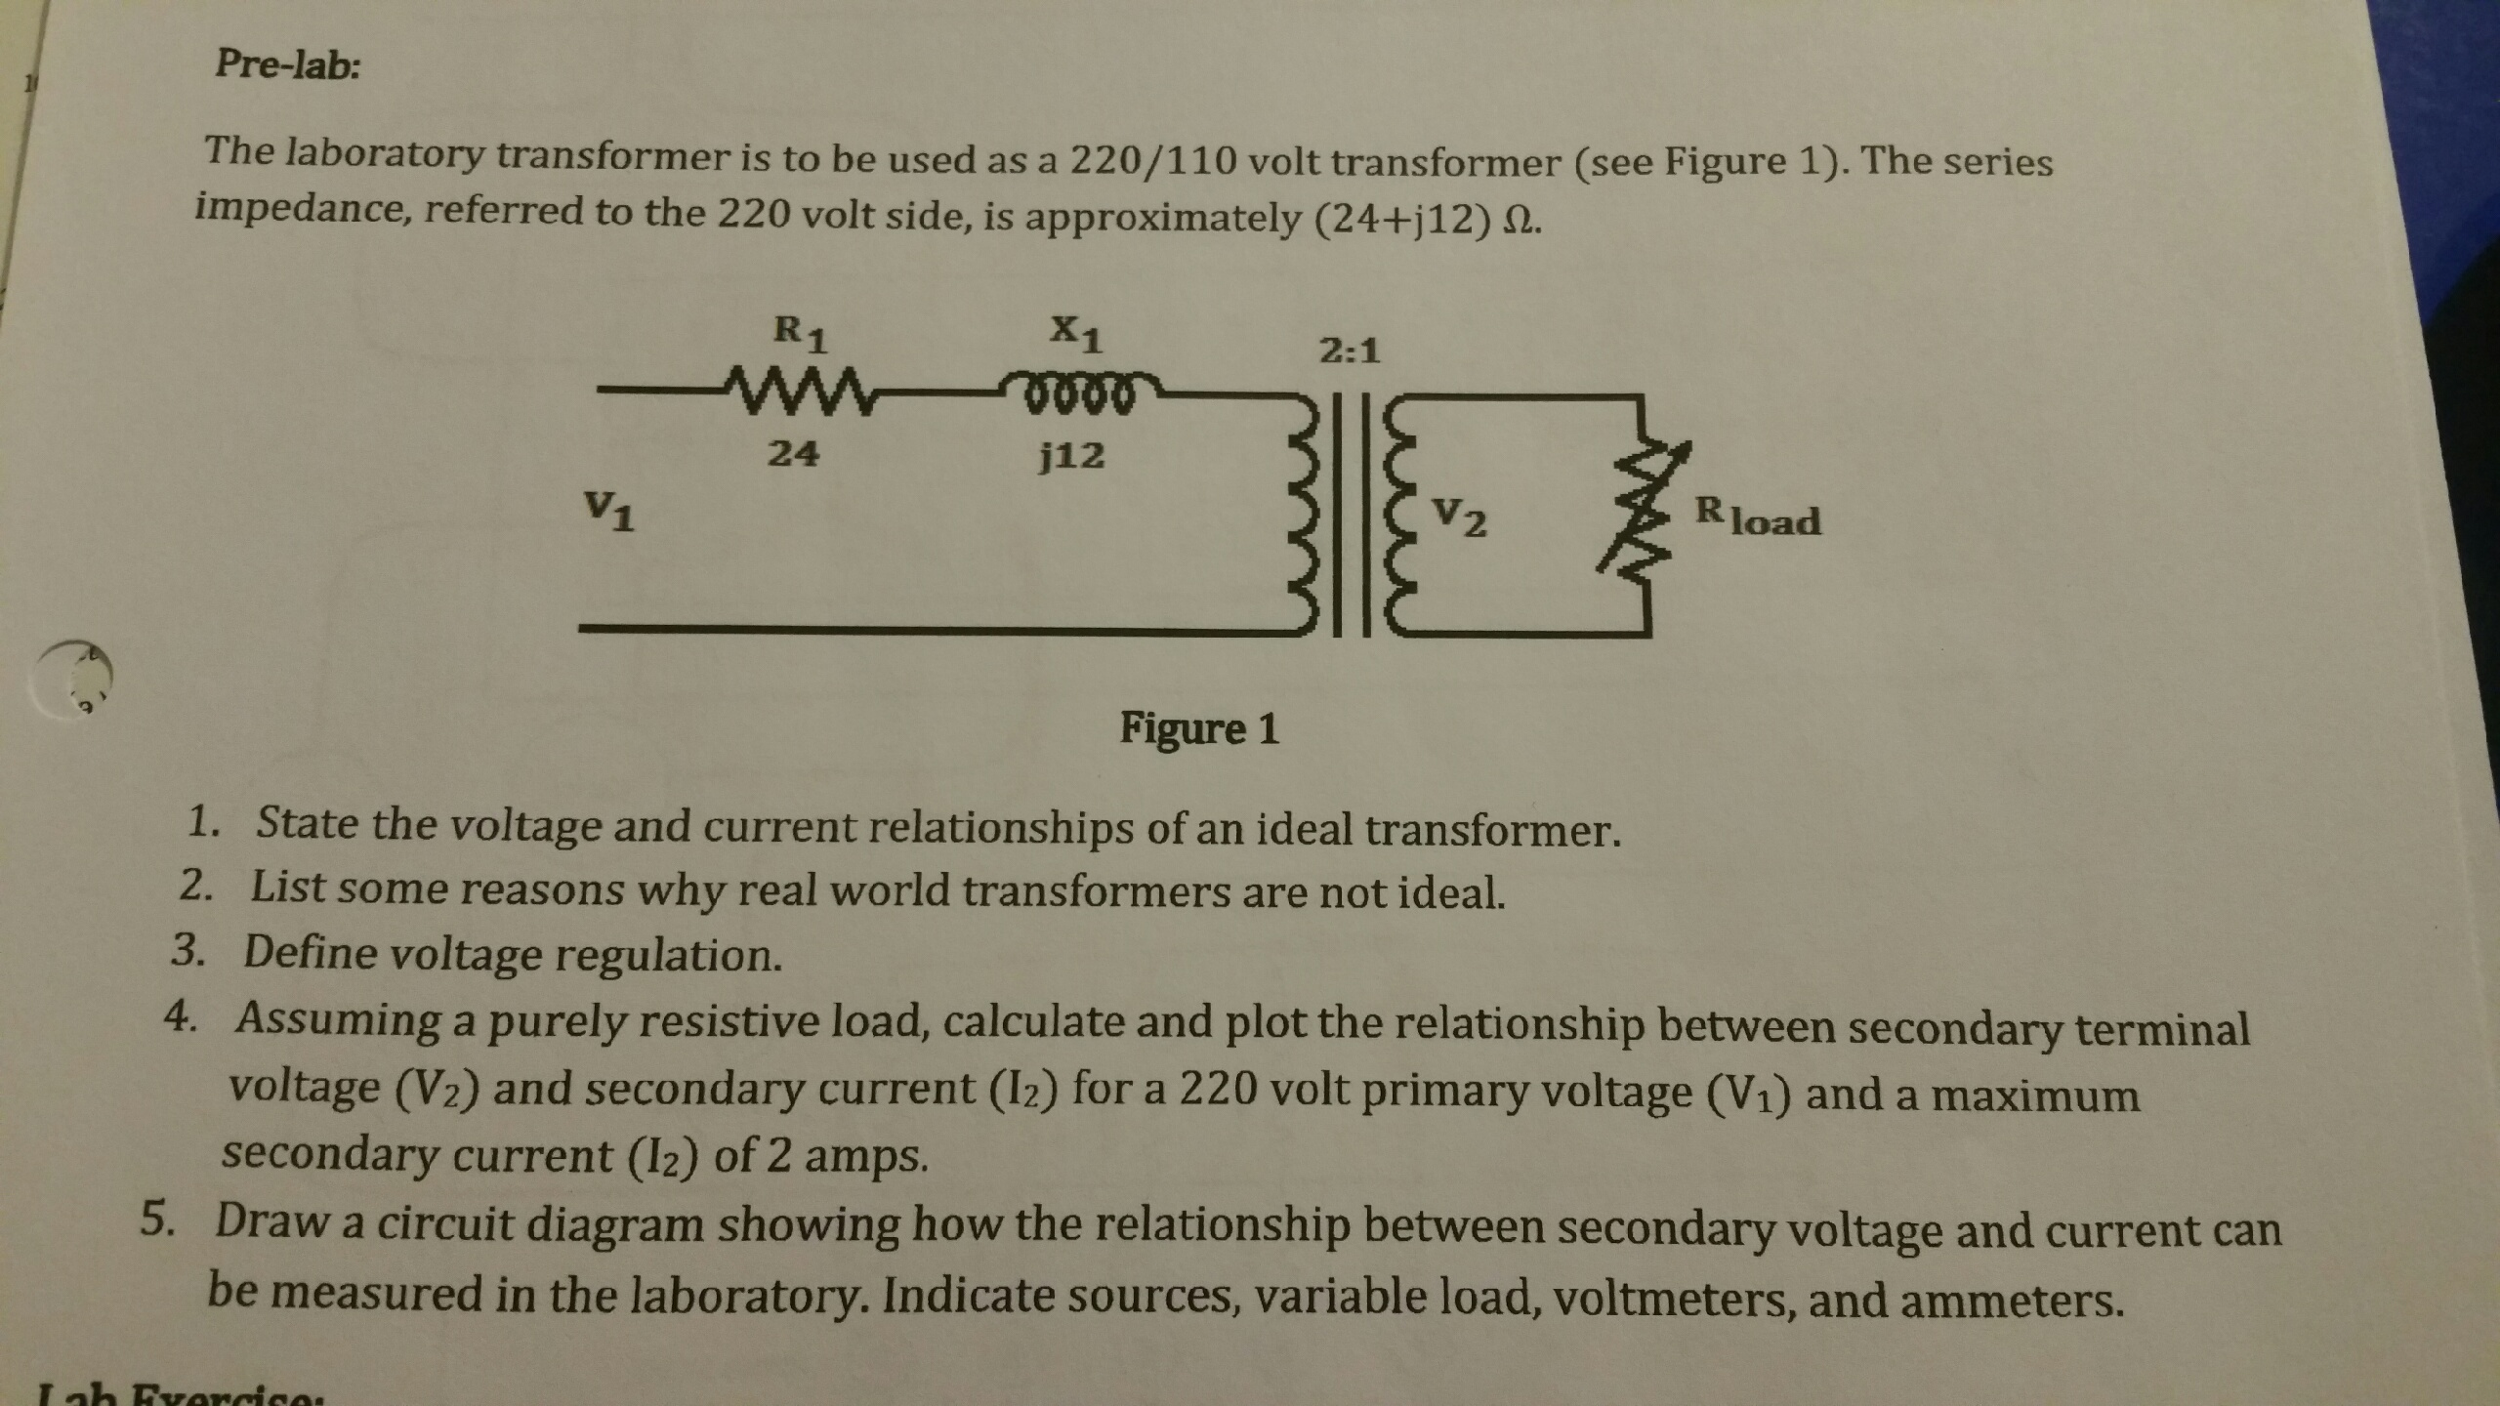 Solved Using The Circuit Provided Assuming A Purely Resi 230 Volt Schematic Wiring Diagram Pre Lab Laboratory Transformer Is To Be Used As 220 110